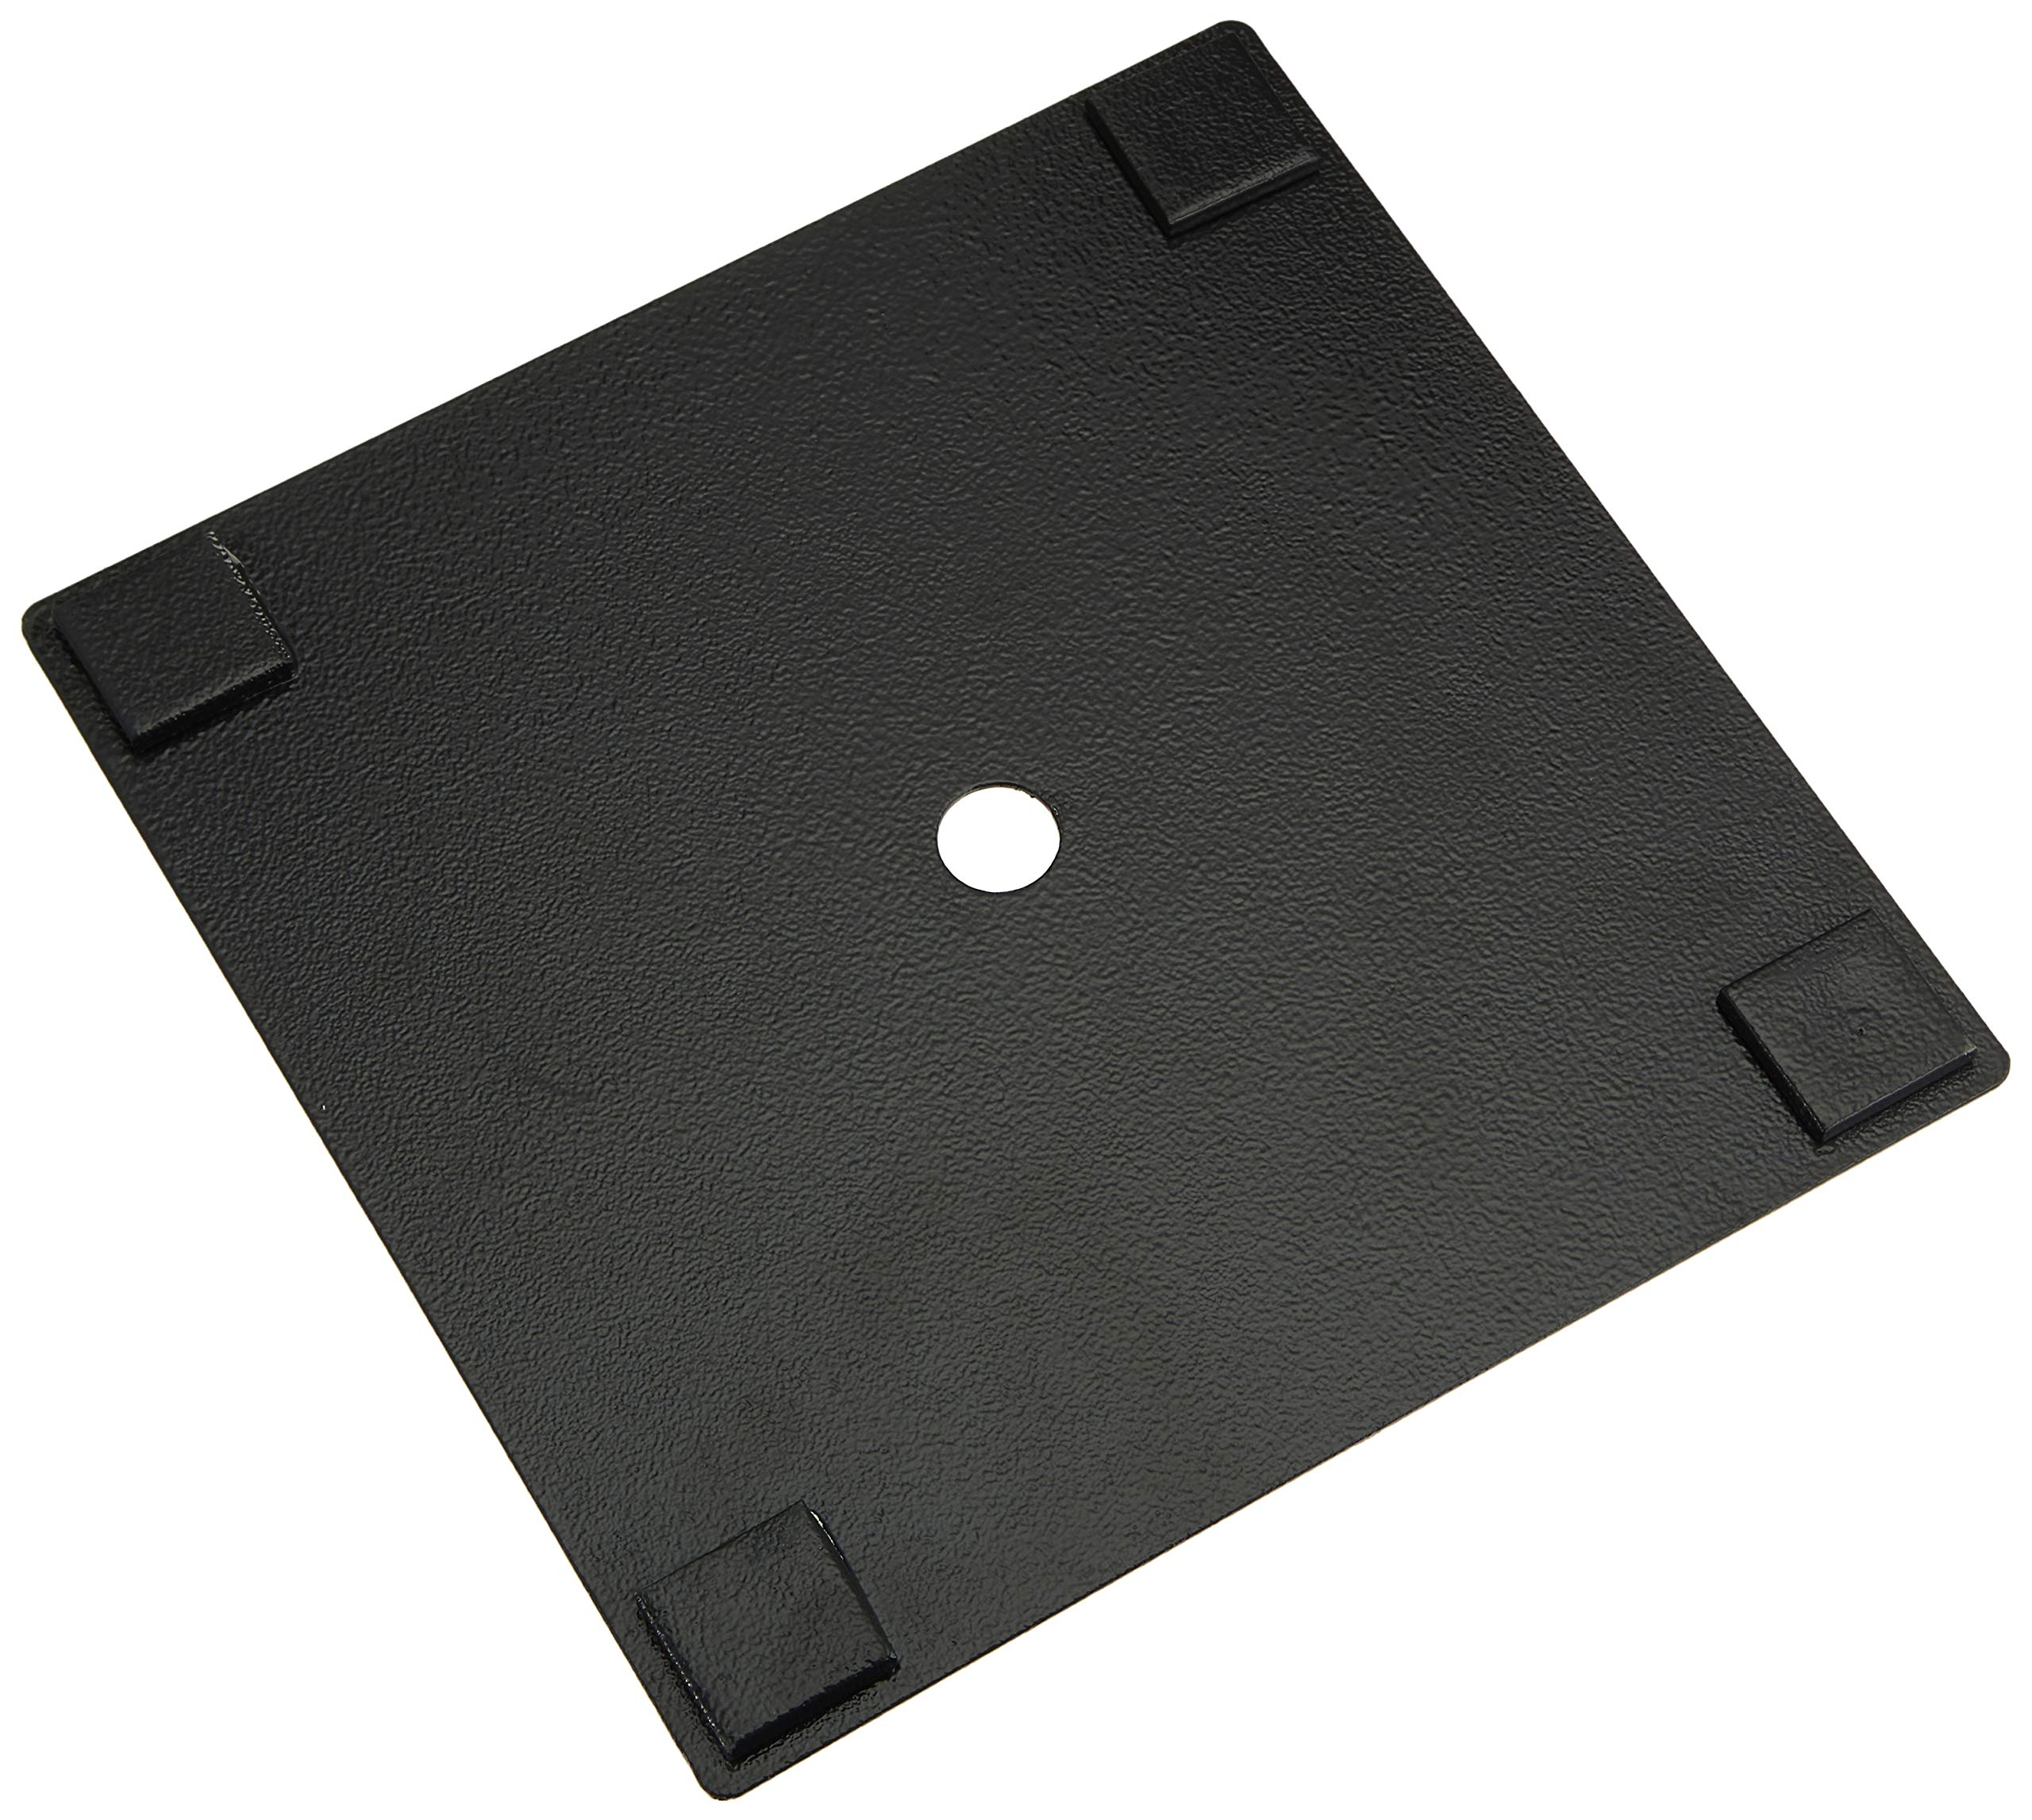 Protex Durable Floor Safe, Black (IF-1212C II) by Protex (Image #3)